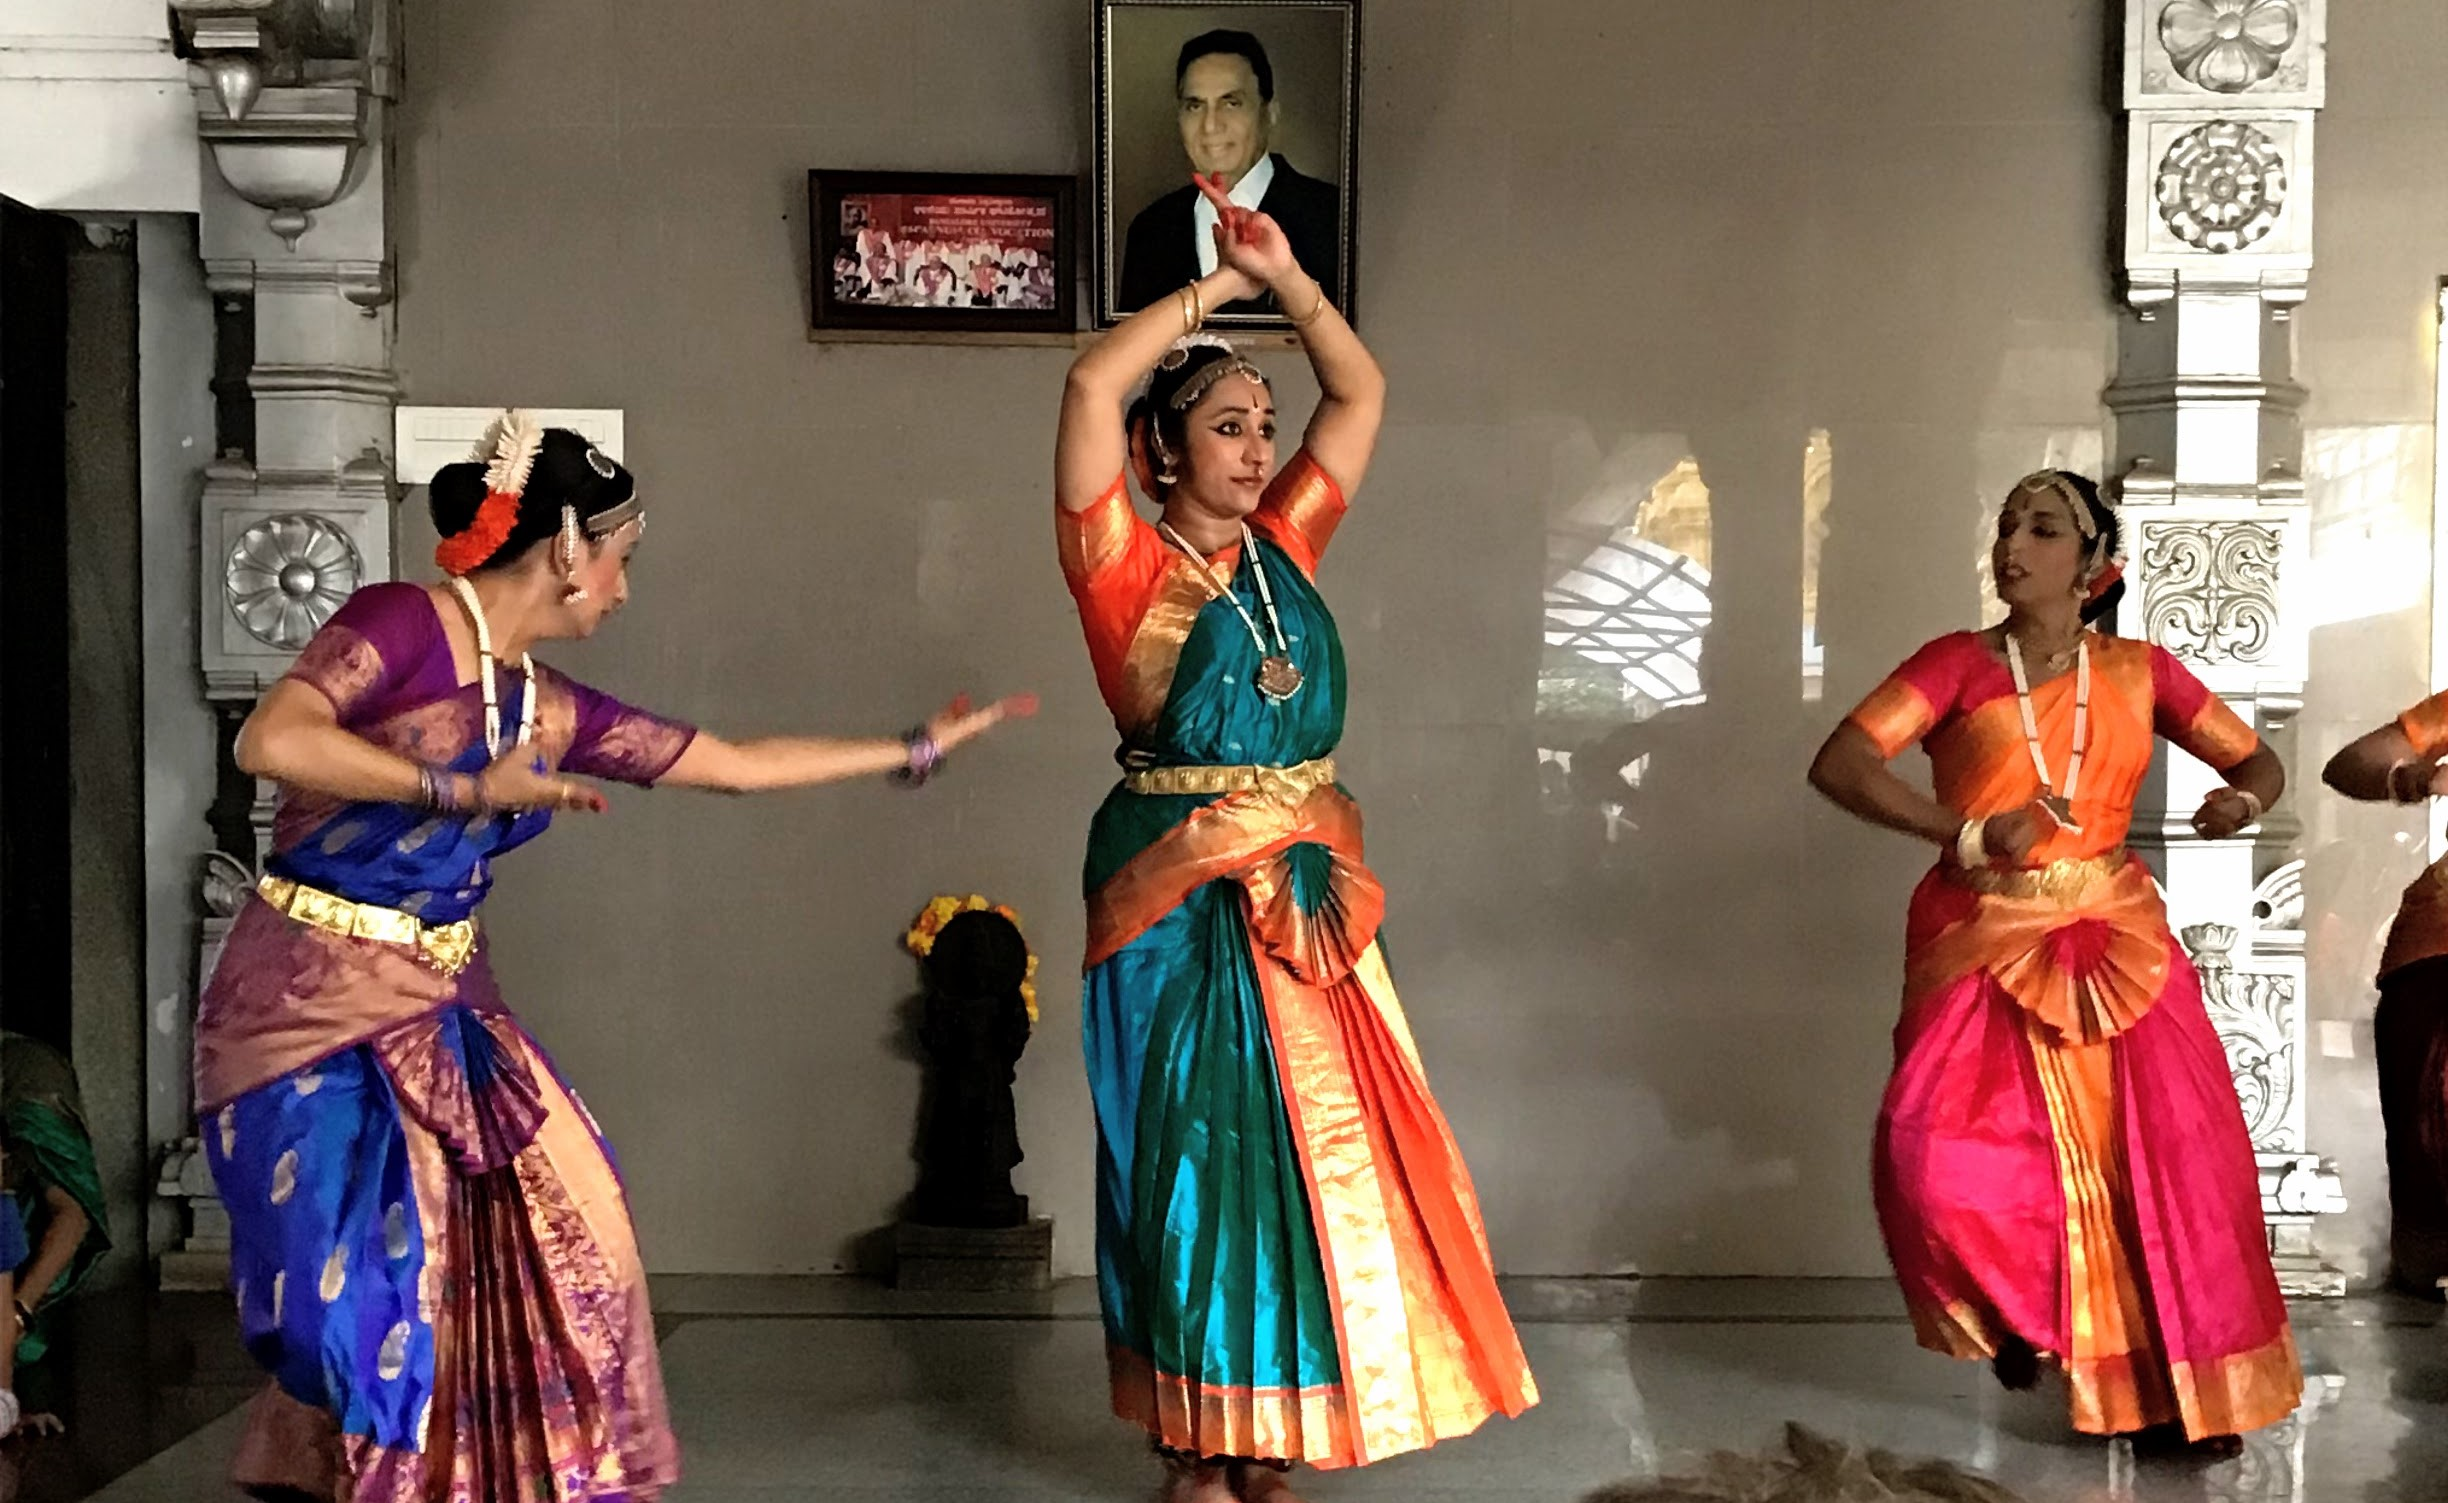 Dancers Manasi, Nisha and Mahalakshmi depicting the churning of the ocean